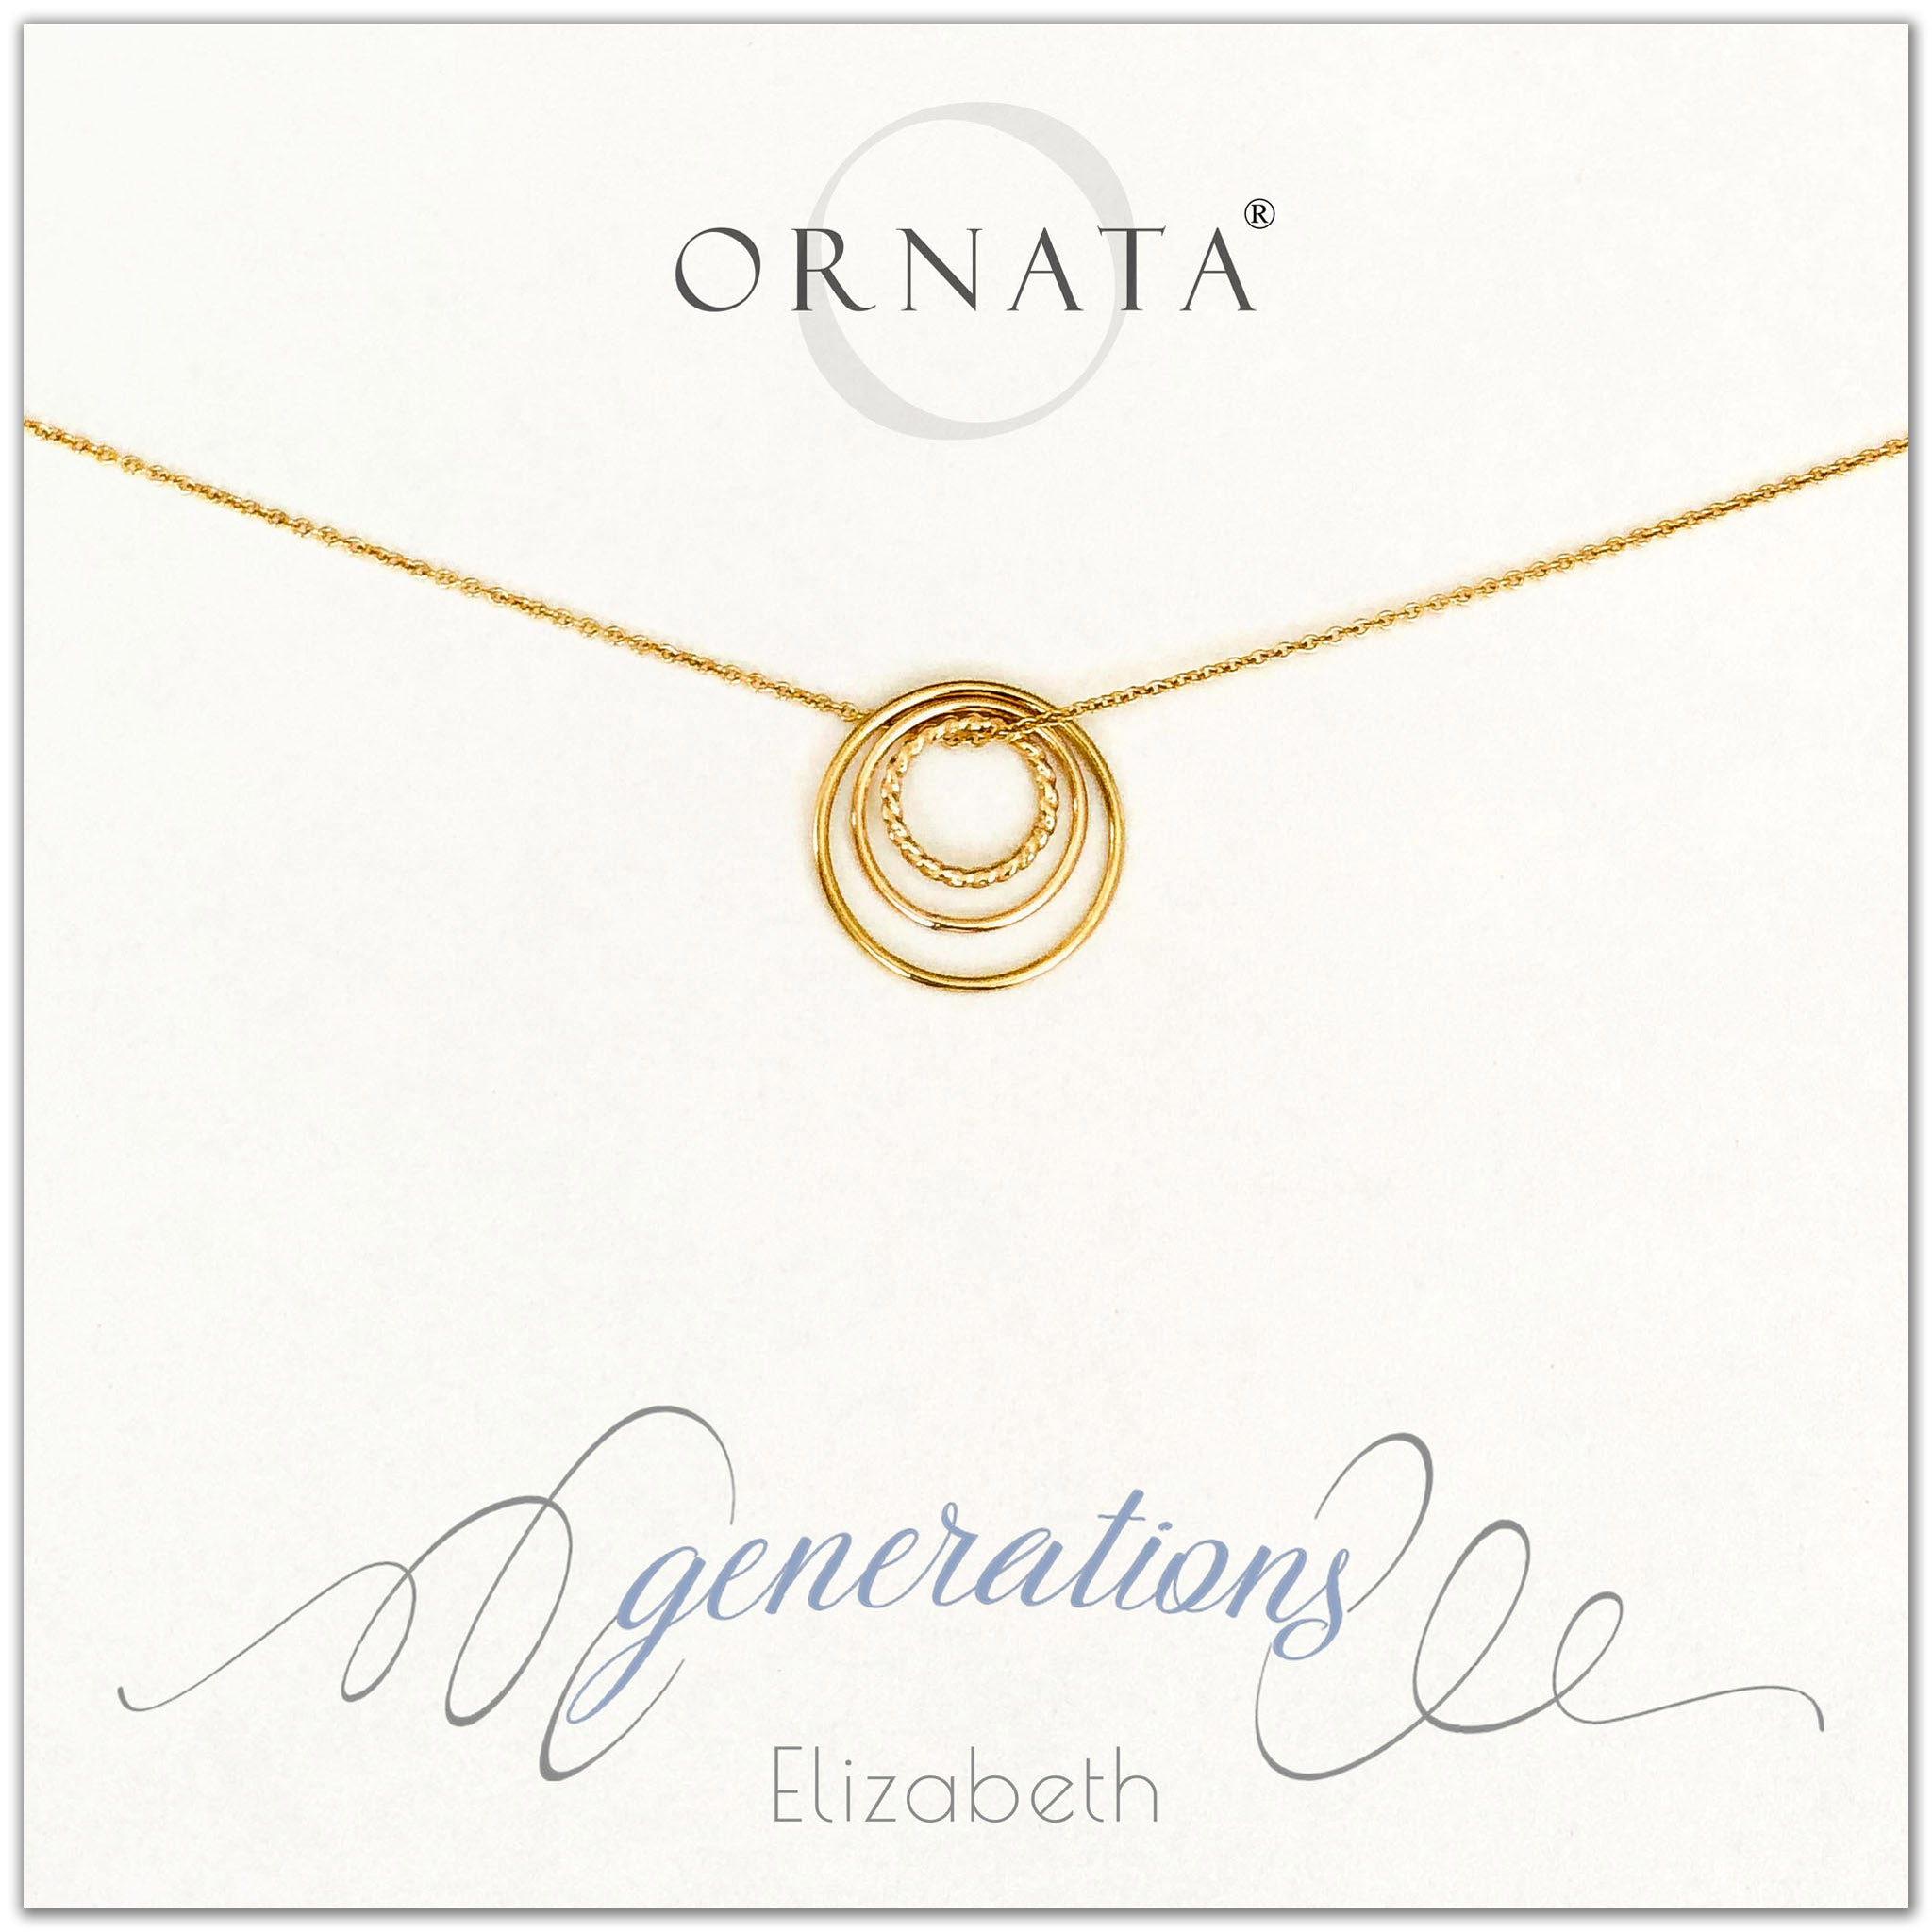 Three Generations Jewelry - personalized gold necklaces. Our 14 karat gold filled custom jewelry is a perfect gift for mothers, daughters, granddaughters, grandmothers, grandmas, sisters, or family members. Three rings represent three generations. Perfect gift for Mother's Day or Mother's Day Jewelry.